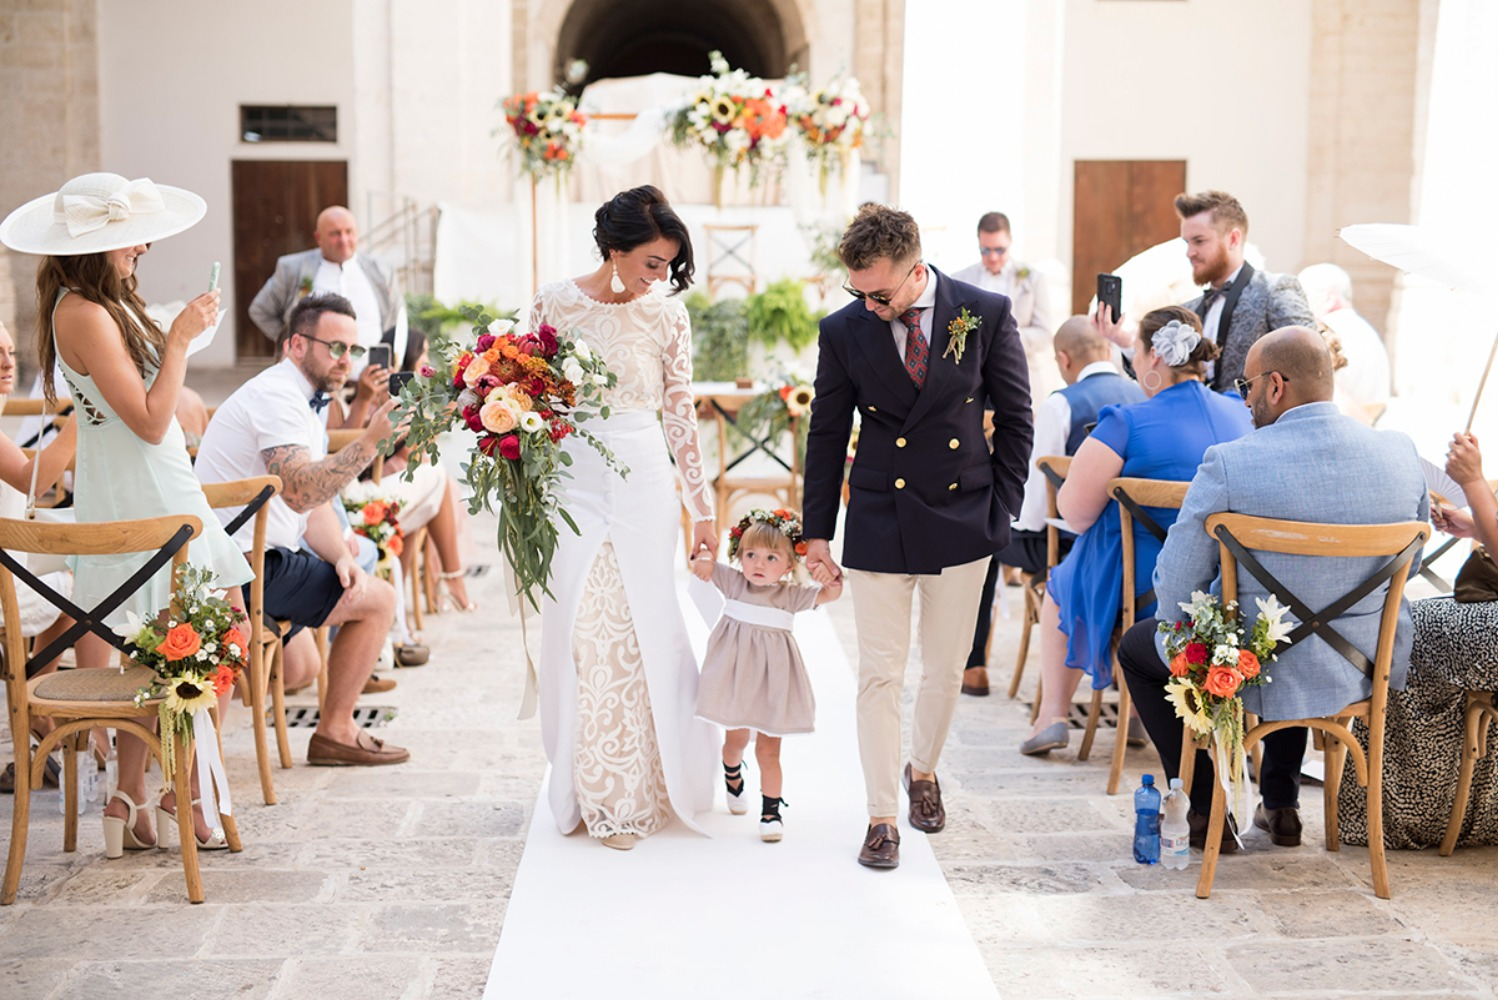 Thought Italian Weddings Couldn't Get Any More Fab?